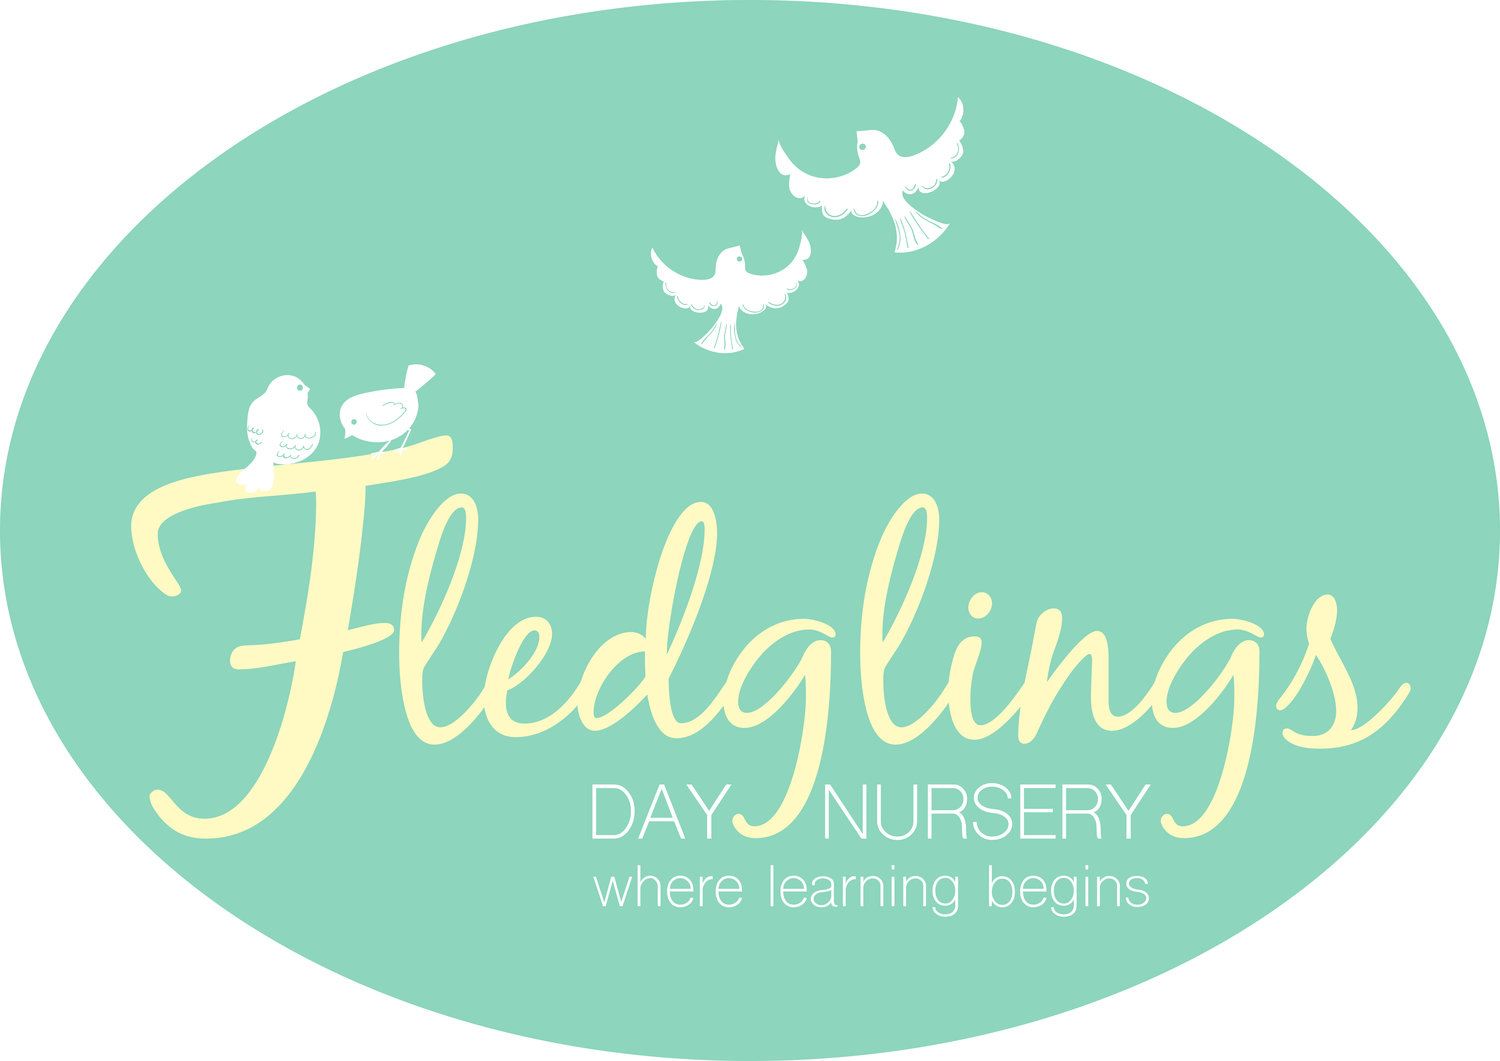 Fledglings Day Nursery